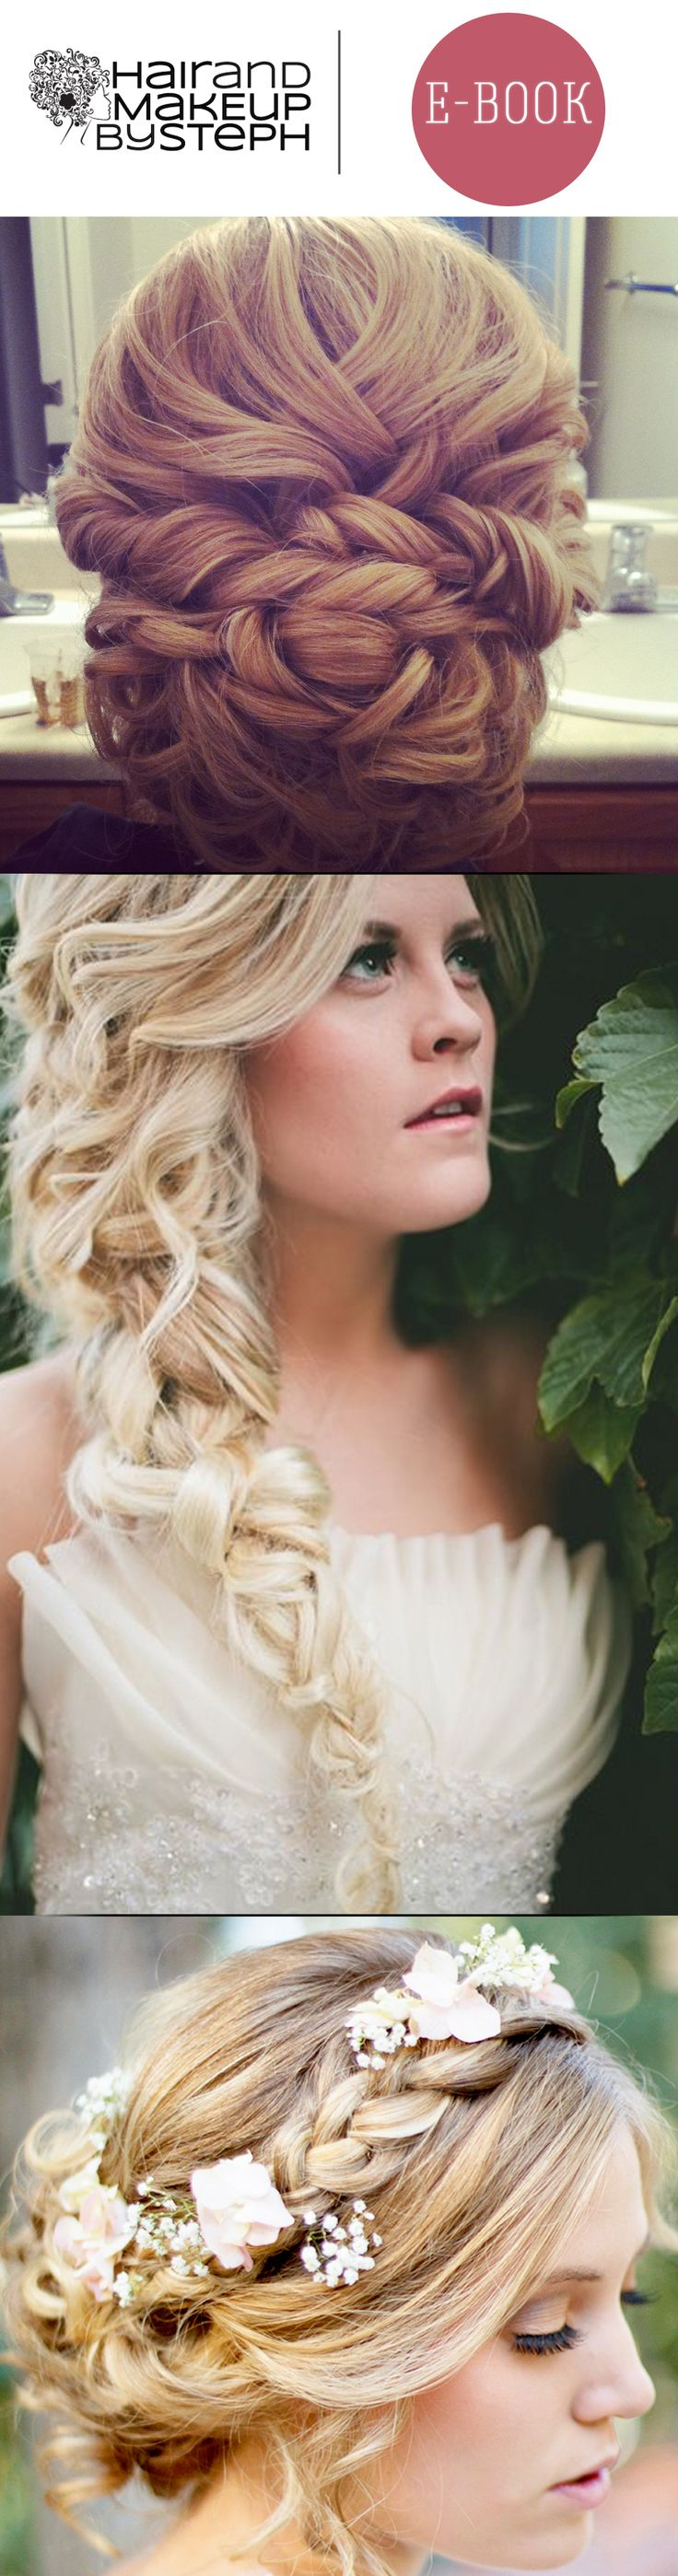 Check out this e-book by our friend @Stephanie Brinkerhoff with hair tutorials for these bridal updos and more! She rocks :)